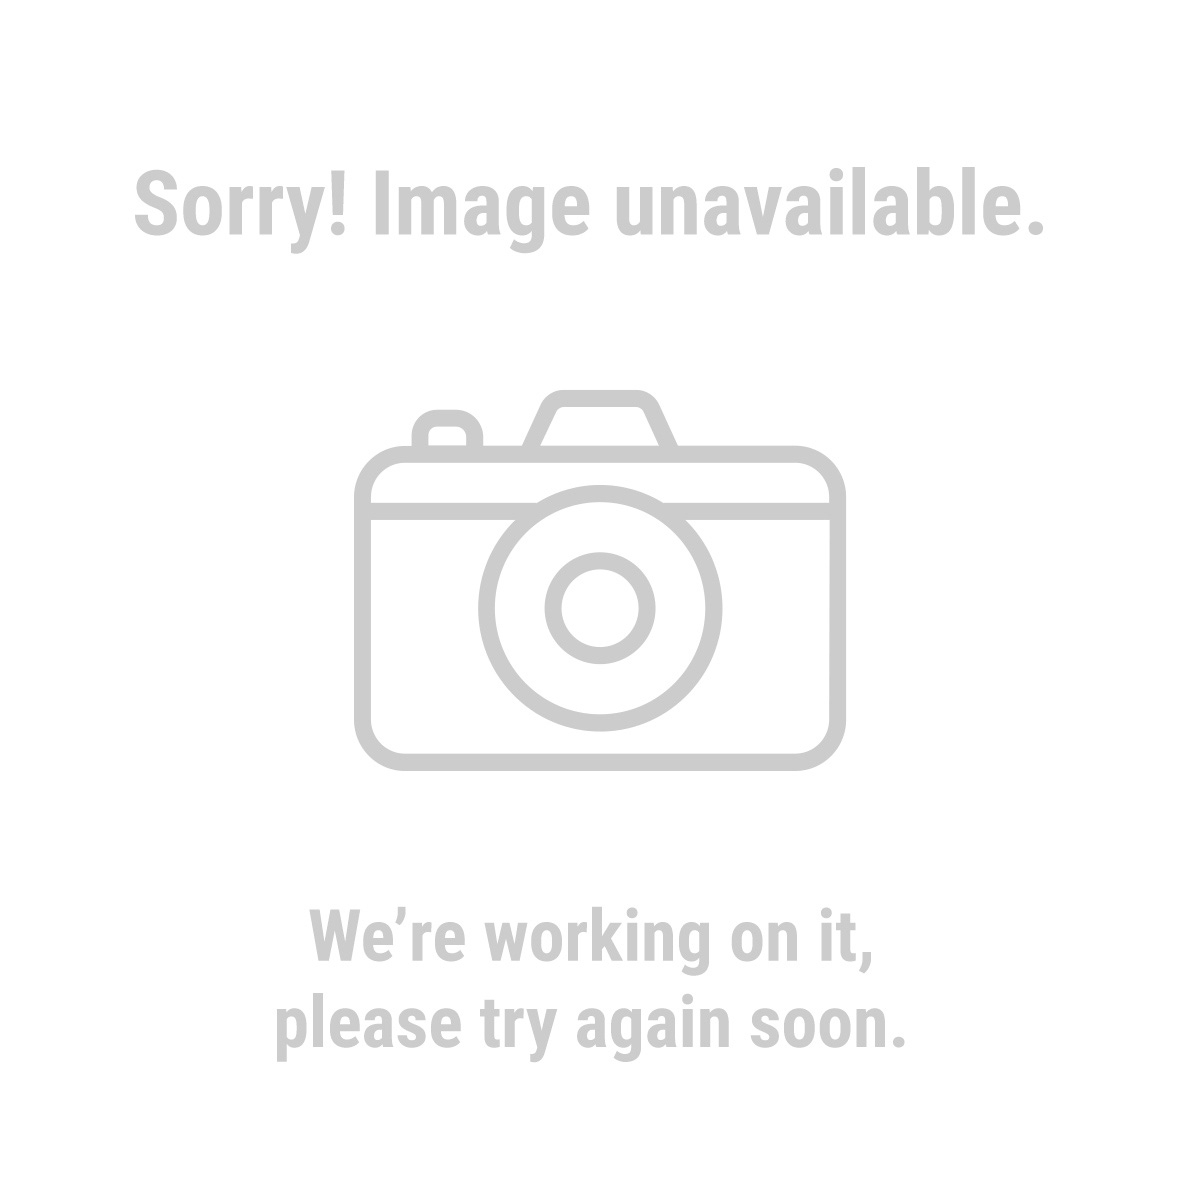 U.S. General® 95659 26 in. 4 Drawer 580 lb. Capacity Glossy Black Roller Cart